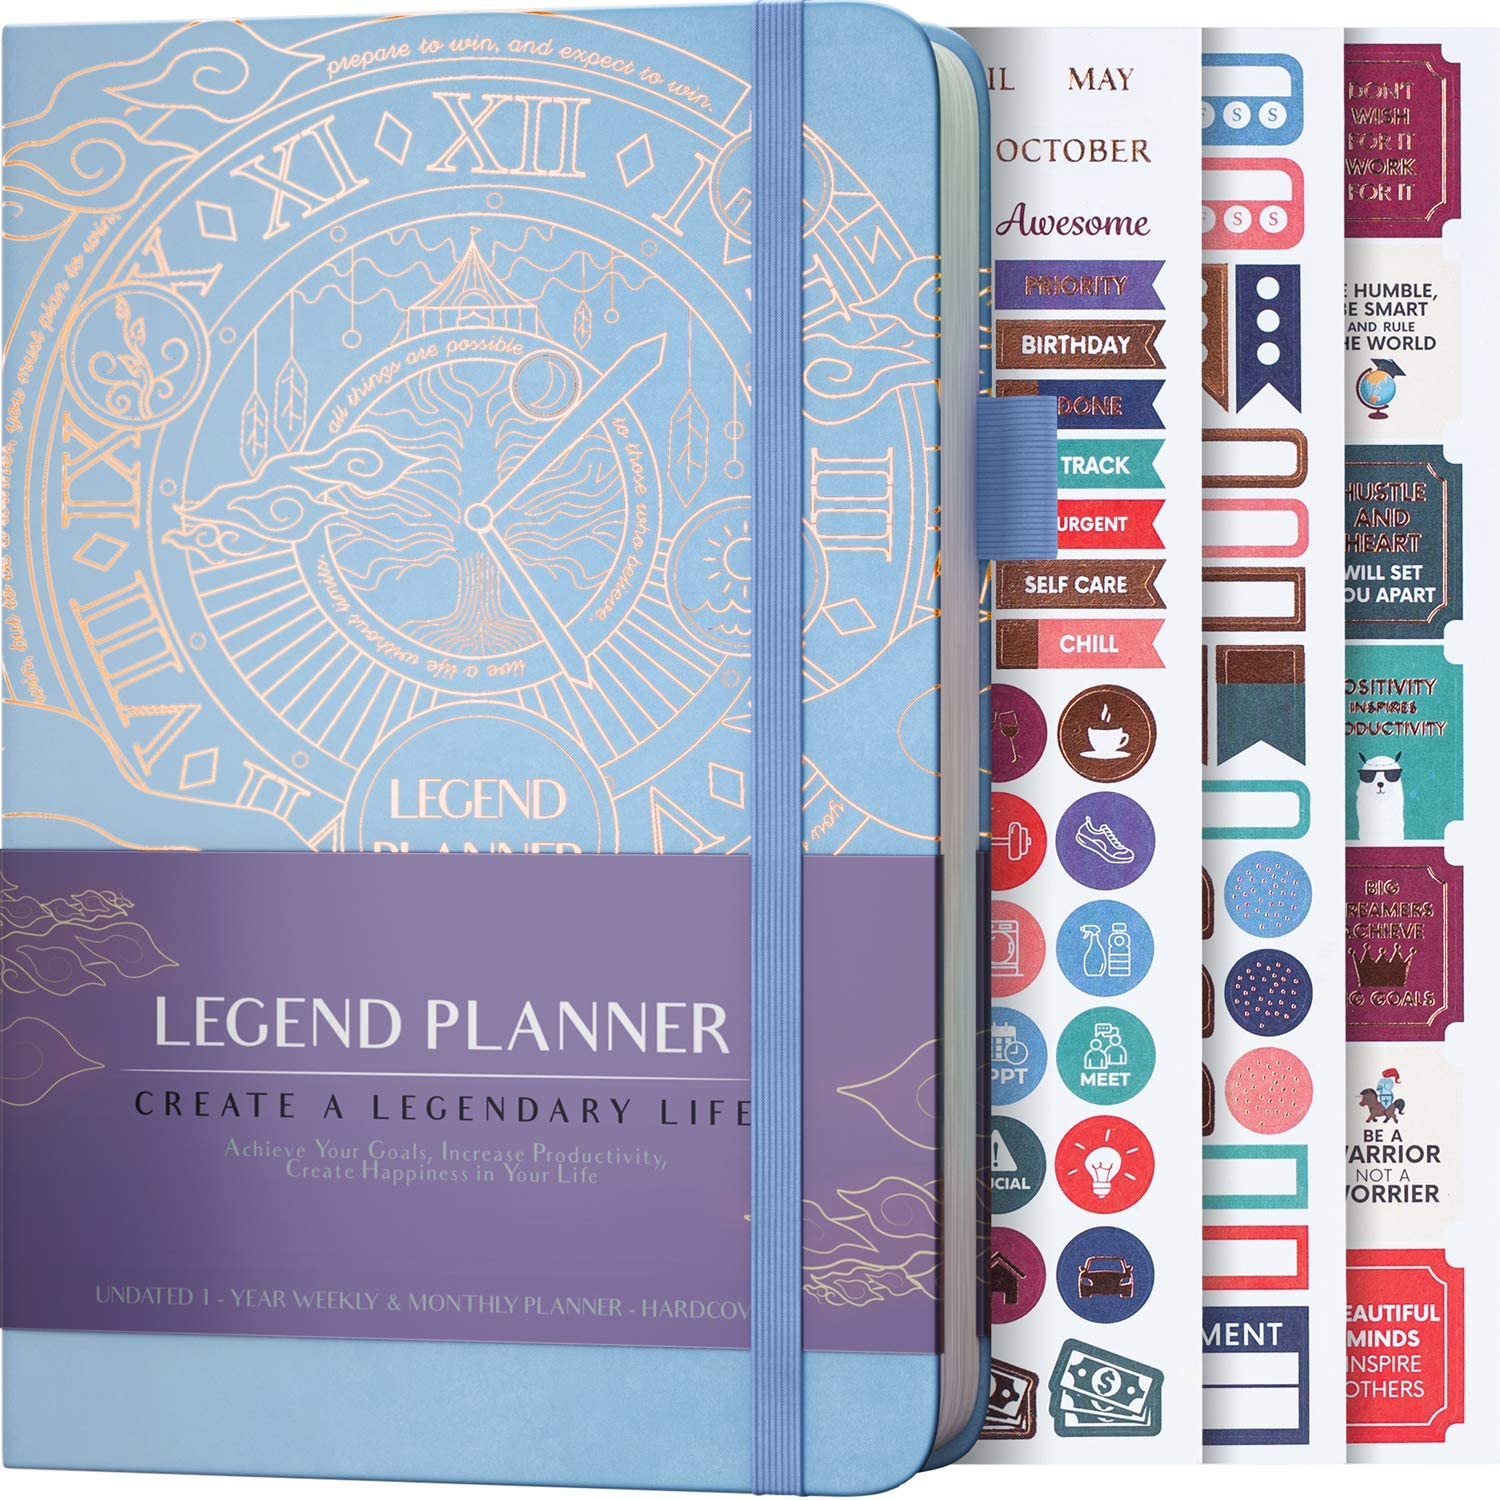 Legend Planner - Deluxe Weekly & Monthly Life Planner to Hit Your Goals & Live Happier. Organizer Notebook & Productivity Journal. A5 Hardcover, Undated - Start Any Time + Stickers - Periwinkle Gold